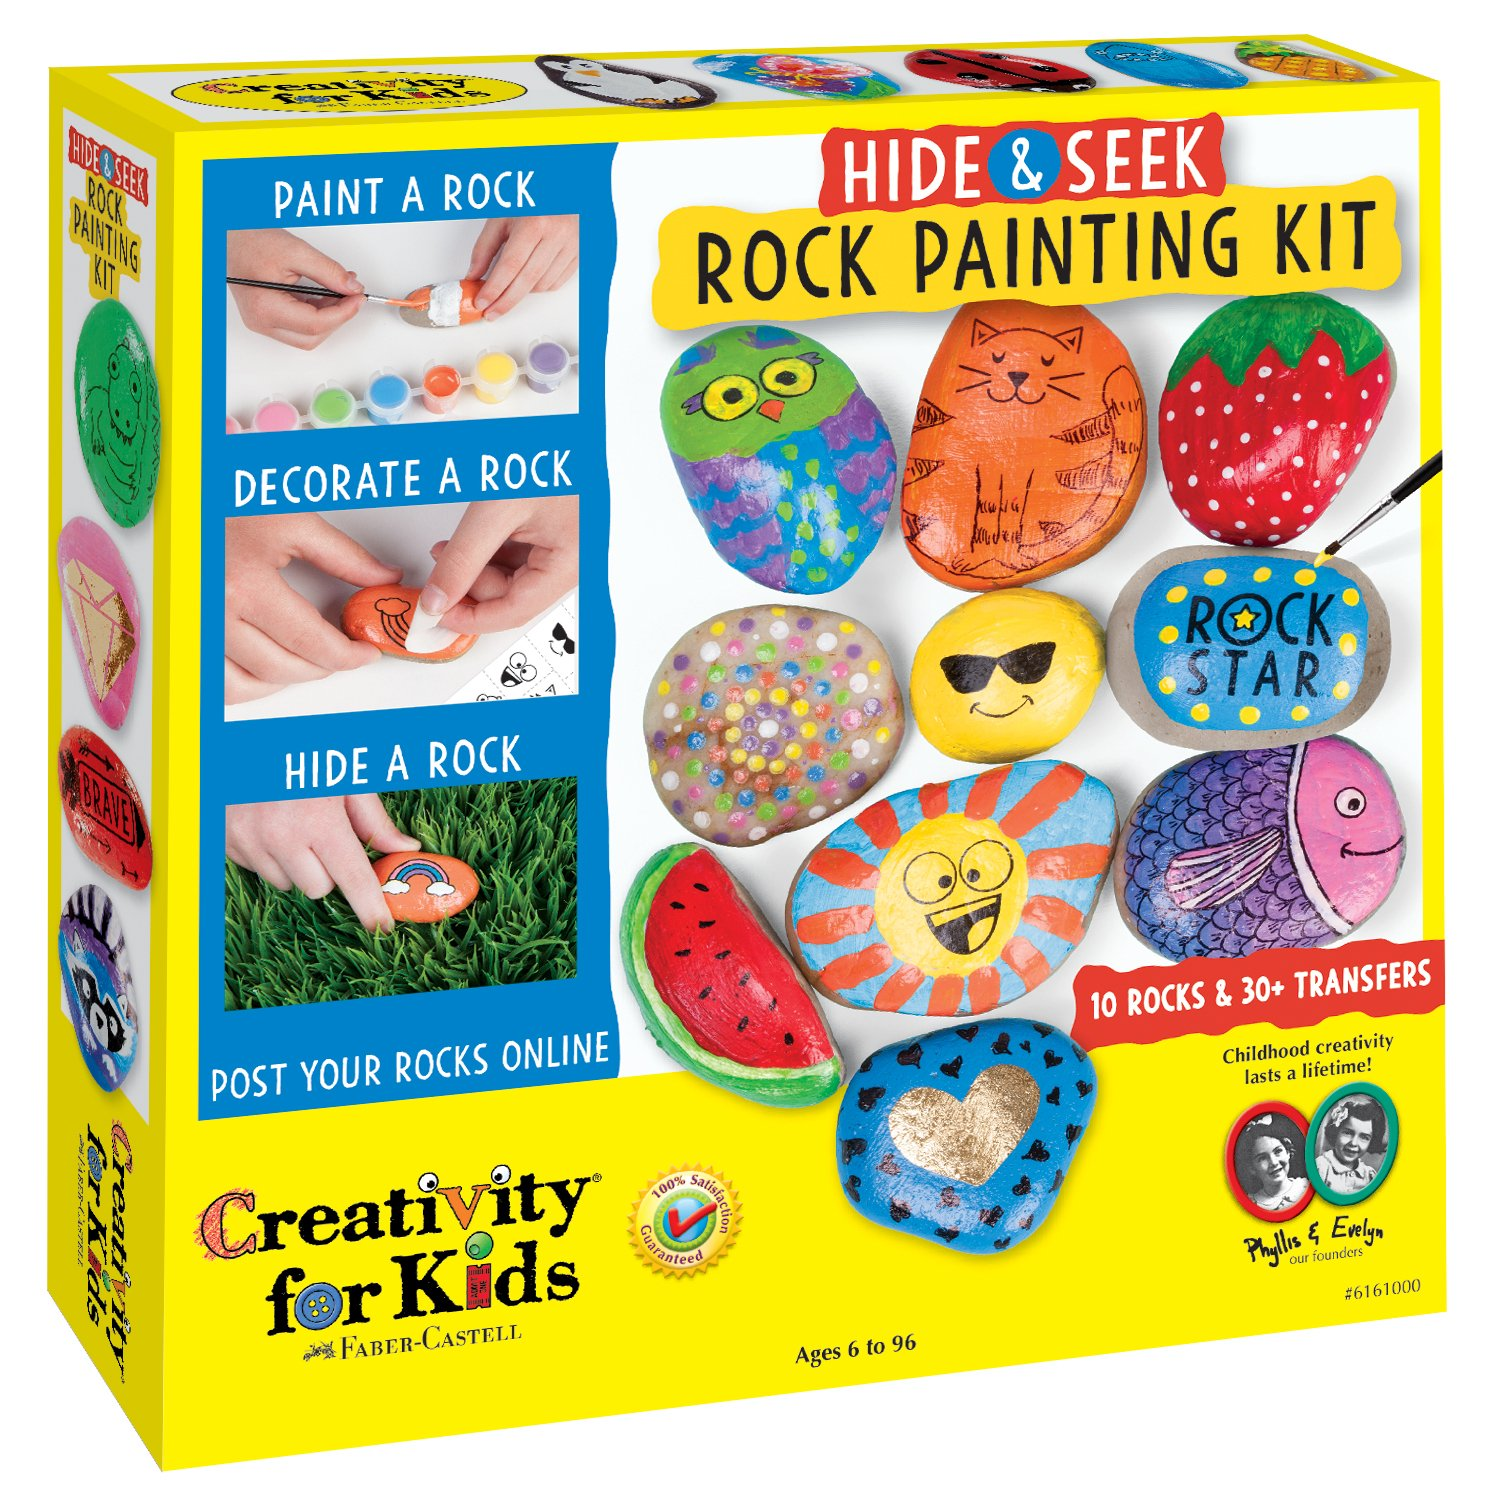 Hide & Seek Rock Painting Kits can be found at AMAZON